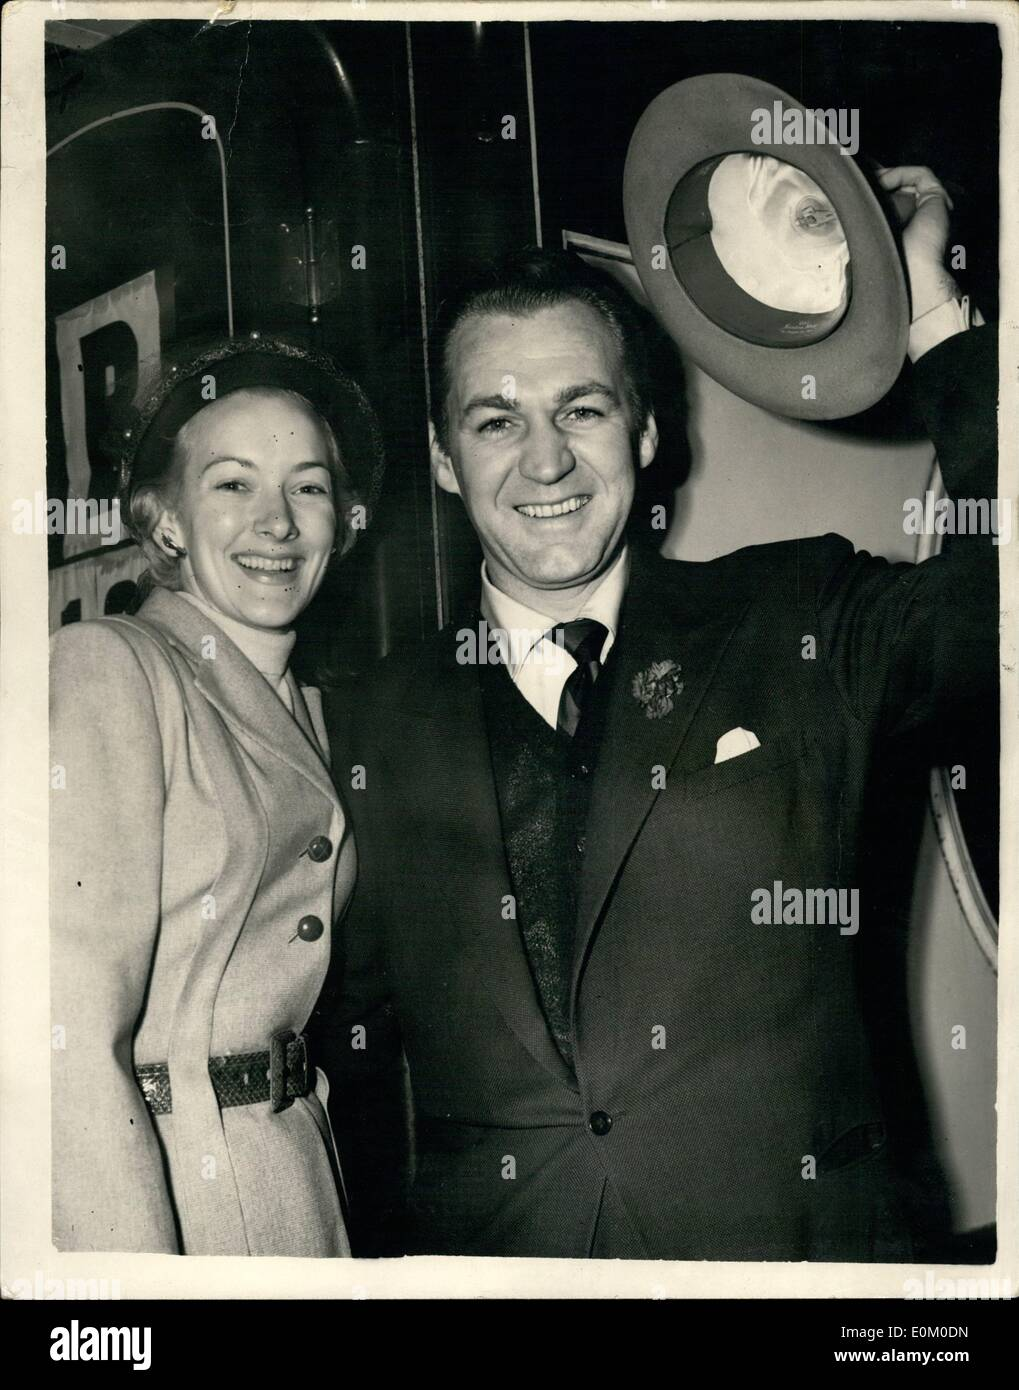 Feb. 02, 1953 - Popular Screen Star Leaves For Home. Forrest Tucker And His Wife - At Waterloo. Photo shows Forrest M. Tucker the popular American screen star and his wife - seen when they left Waterloo Station this morning on the Queen Mary Boat train - on way to New York. - Stock Image